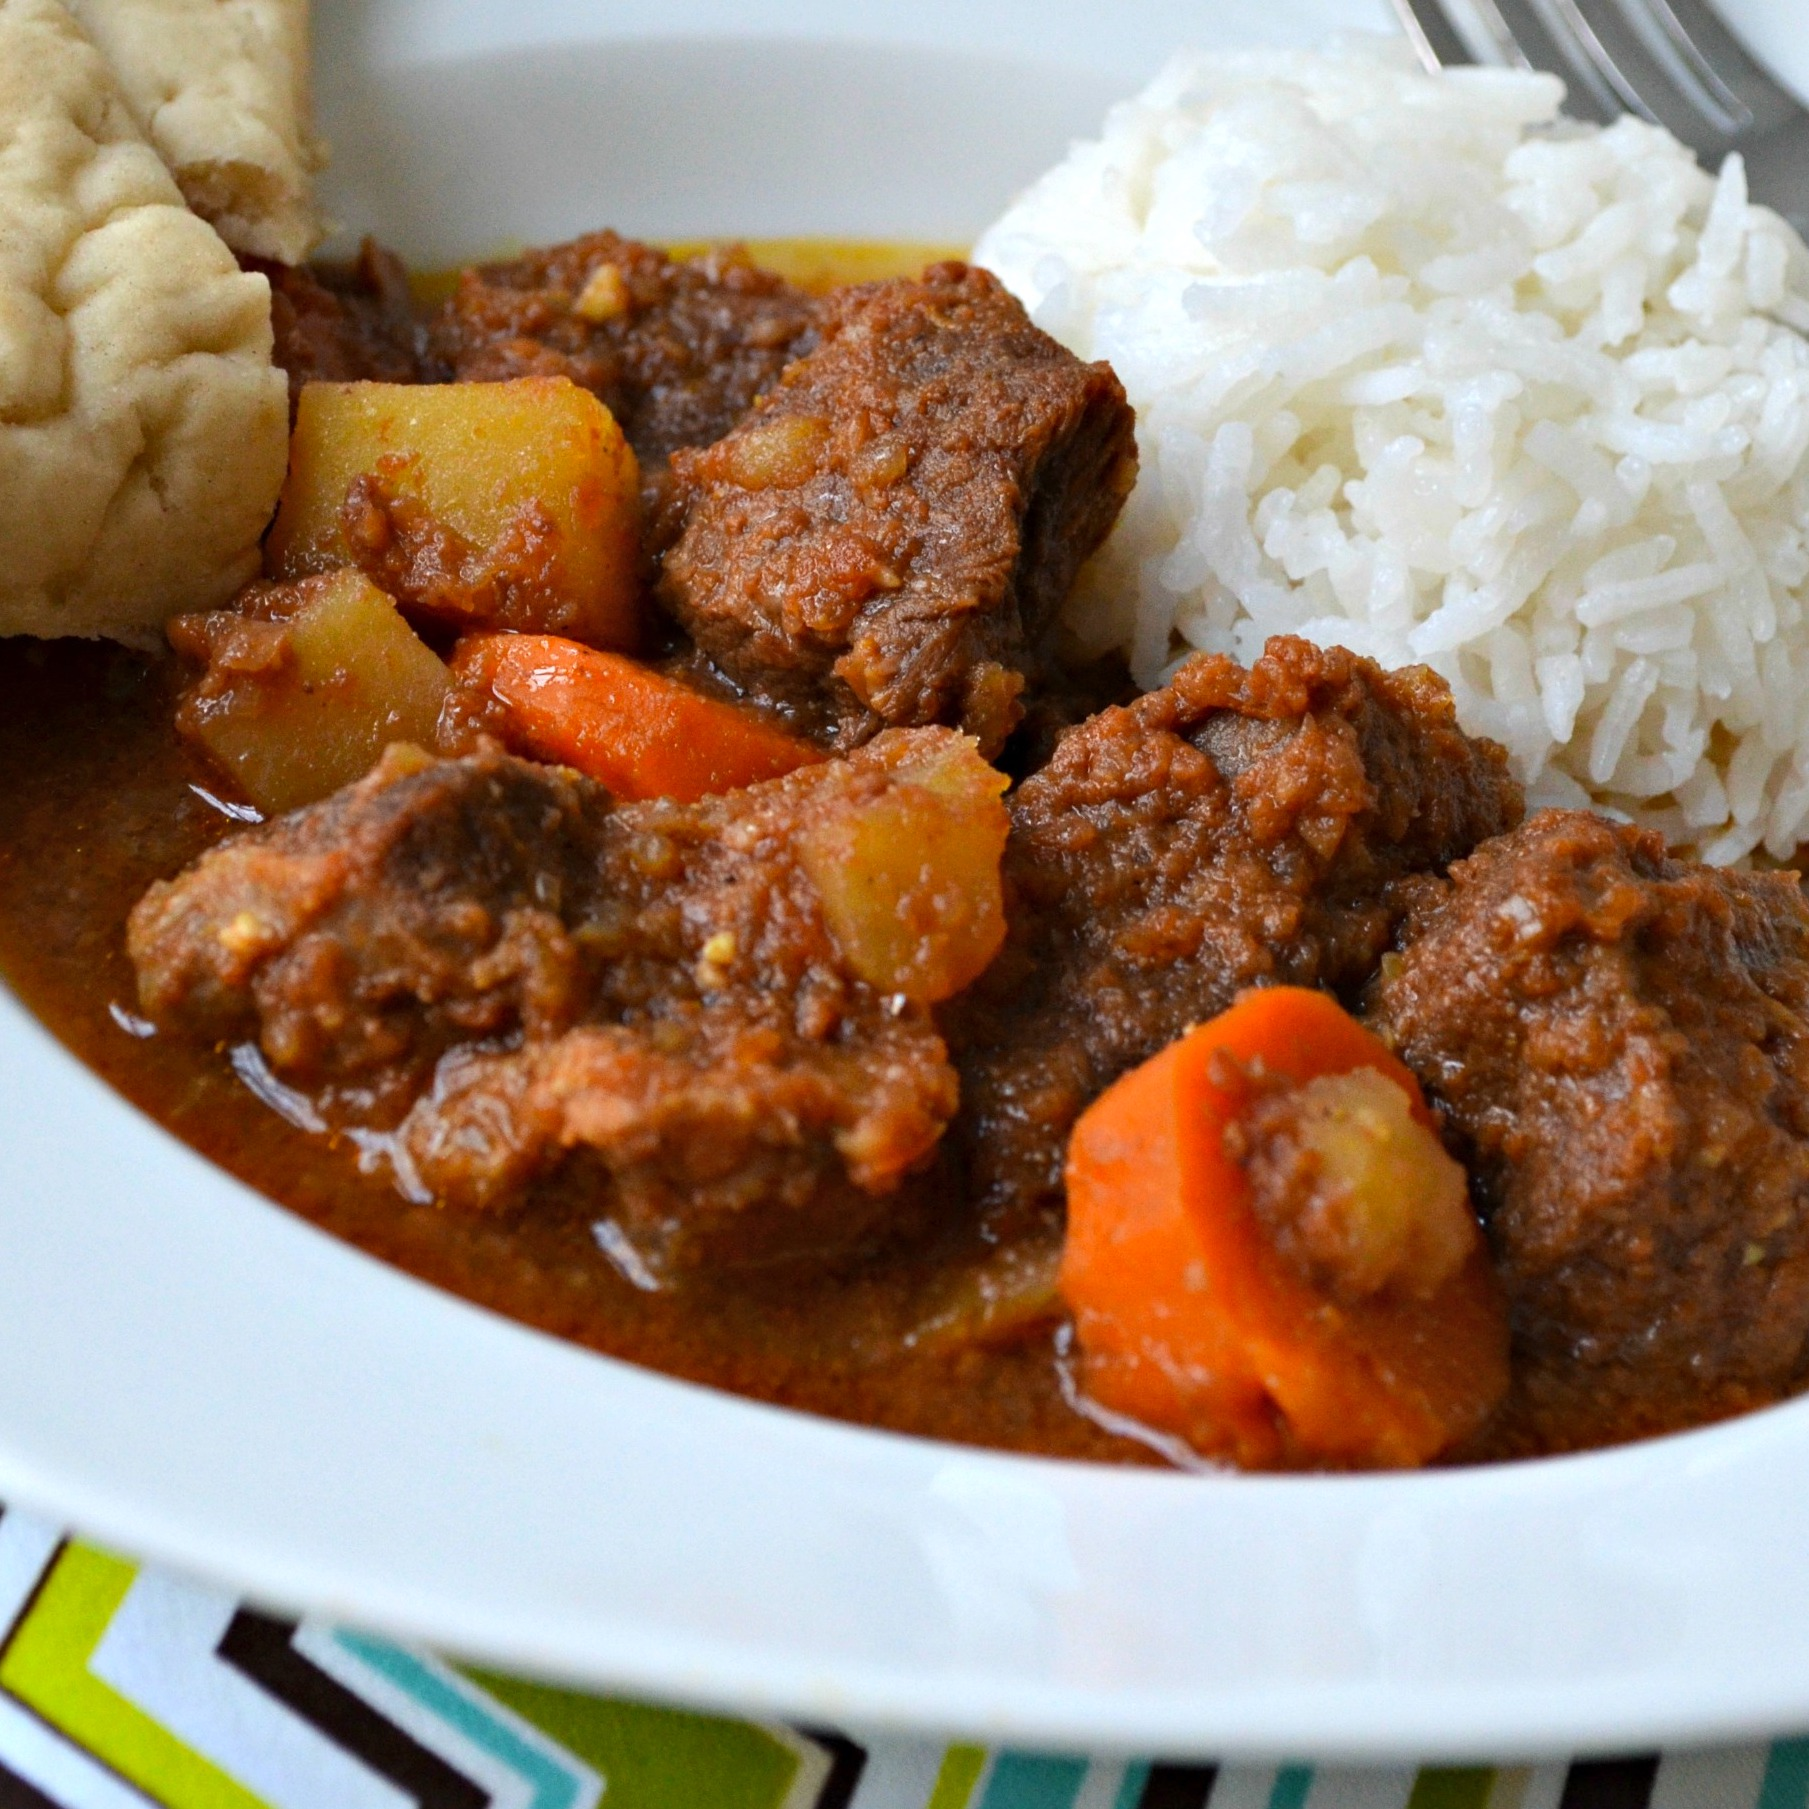 A chunky stew of meat, potatoes, and carrots in a bowl with a scoop of white rice, served with flatbread